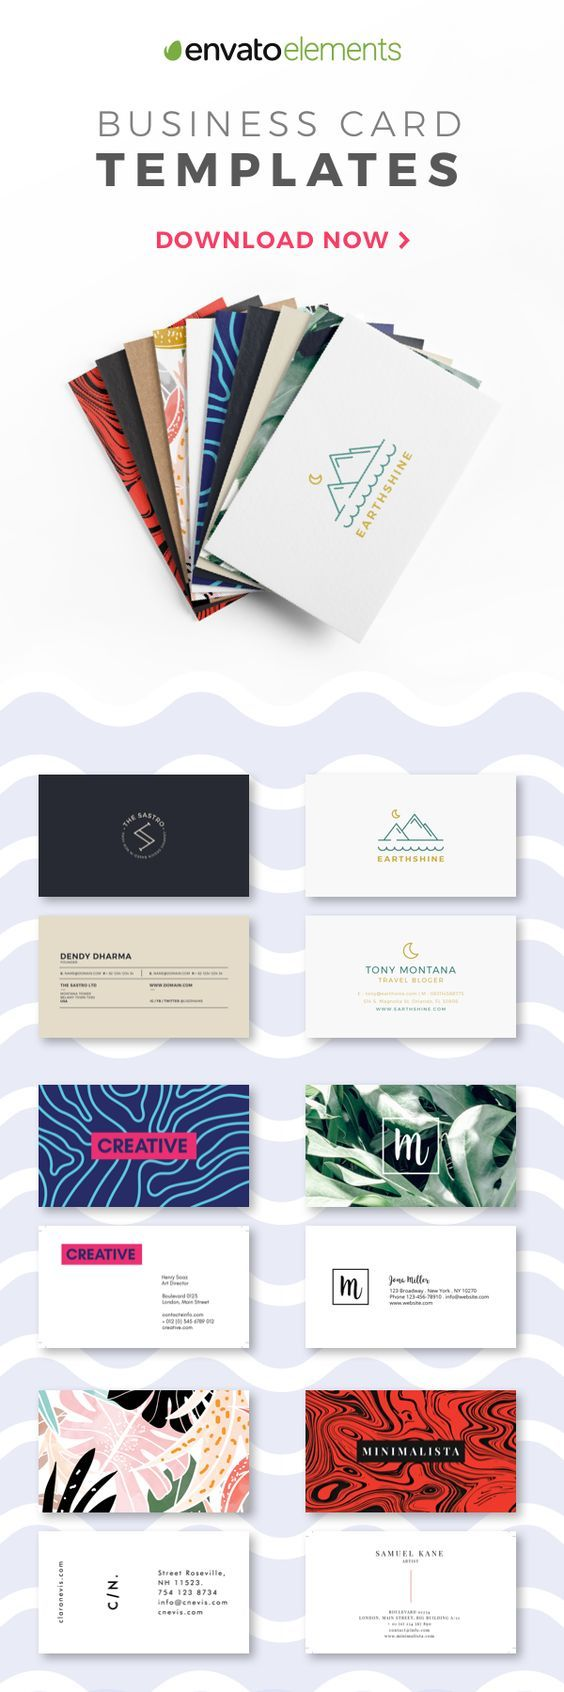 Best Business Card Templates Cool Business Cards Printing Business Cards Business Cards Creative